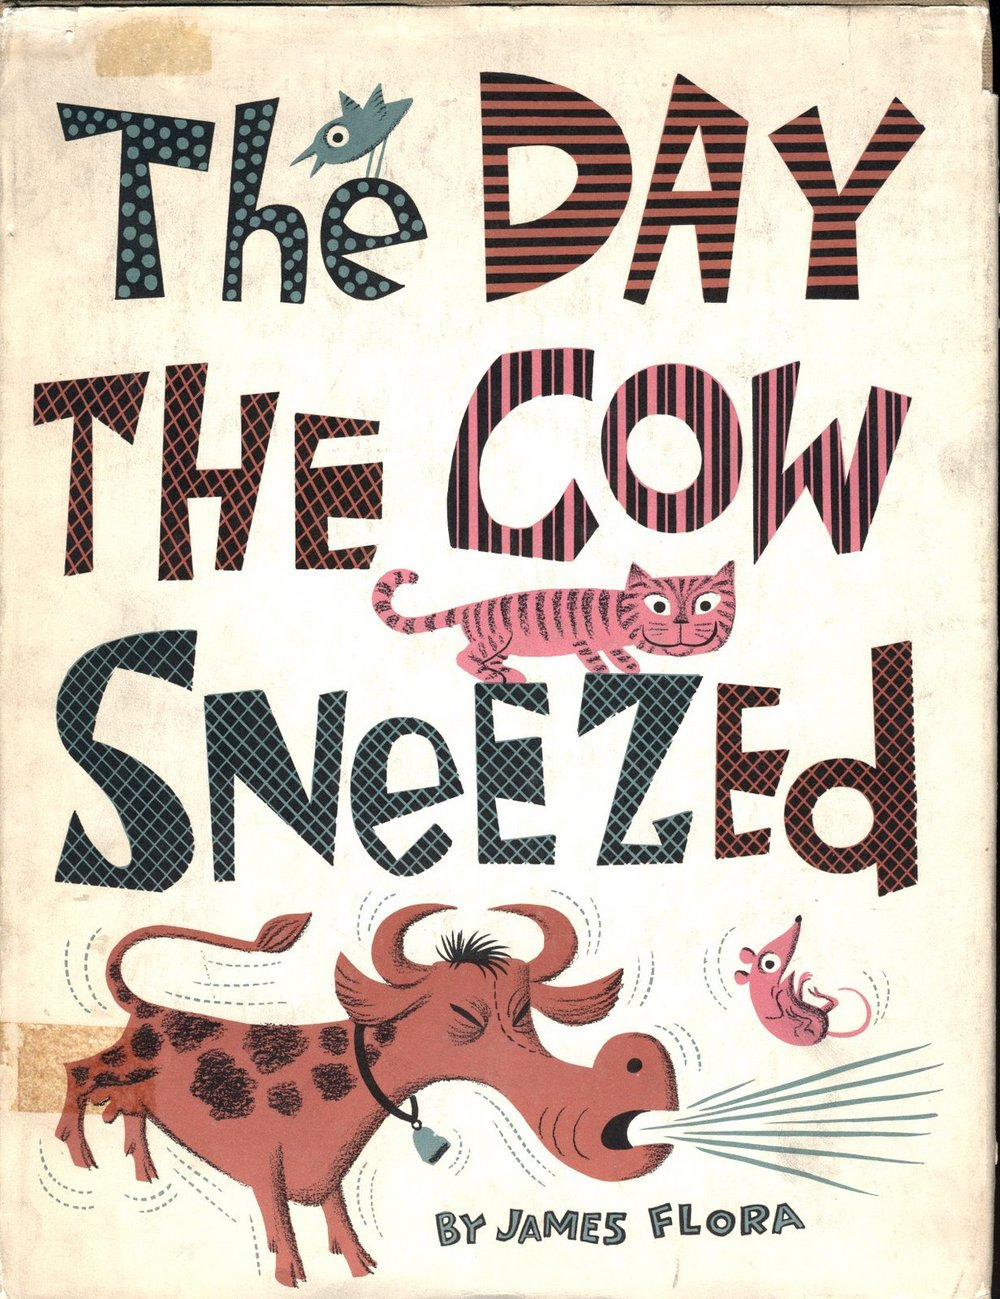 Jim Flora | The Day the Cow Sneezed via  Stickers and Stuff